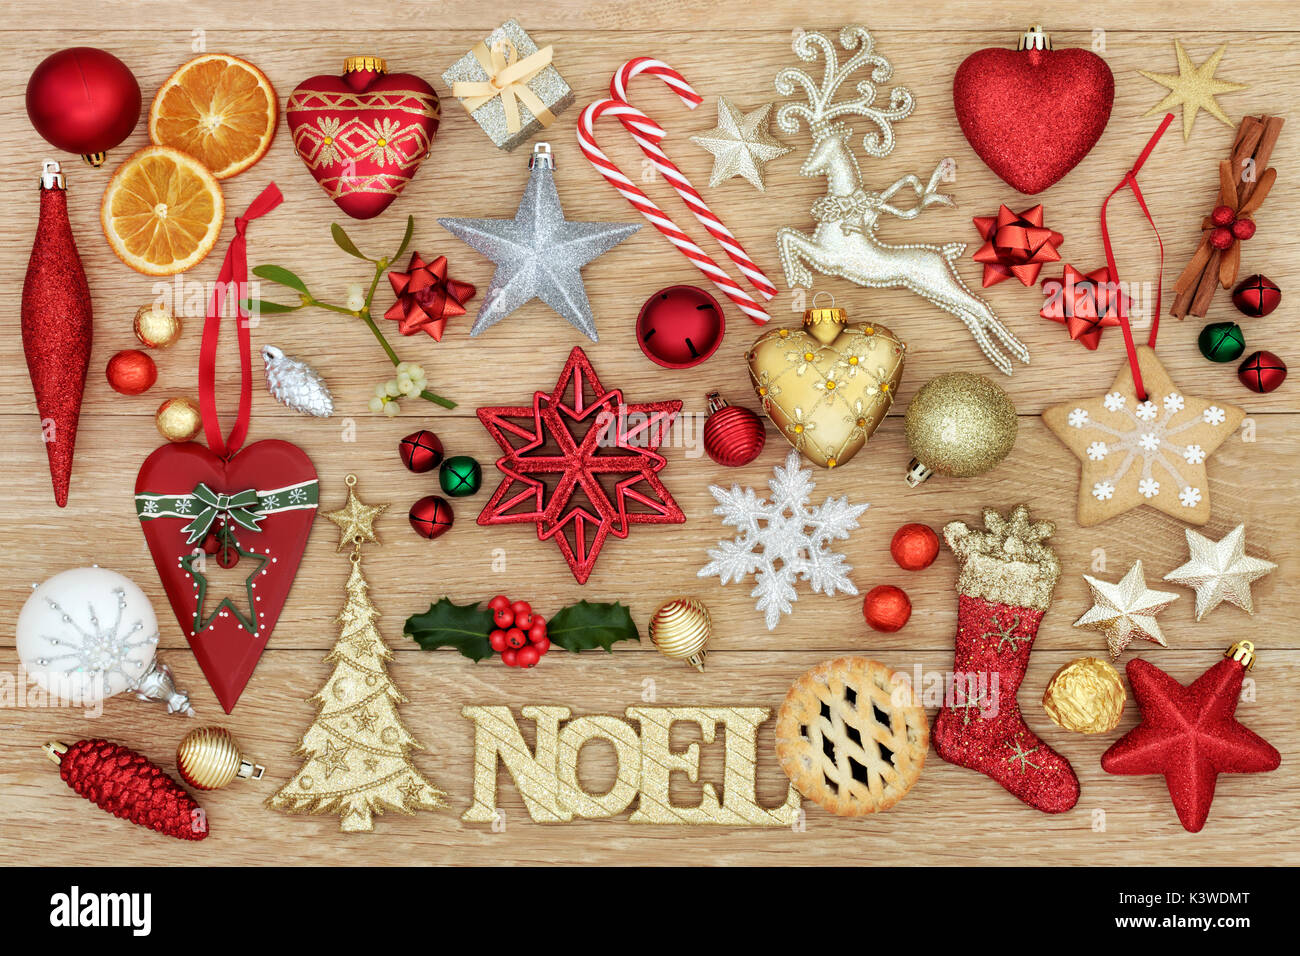 Decoration Biscuit Noel.Christmas Symbols With Noel Sign Bauble Decorations